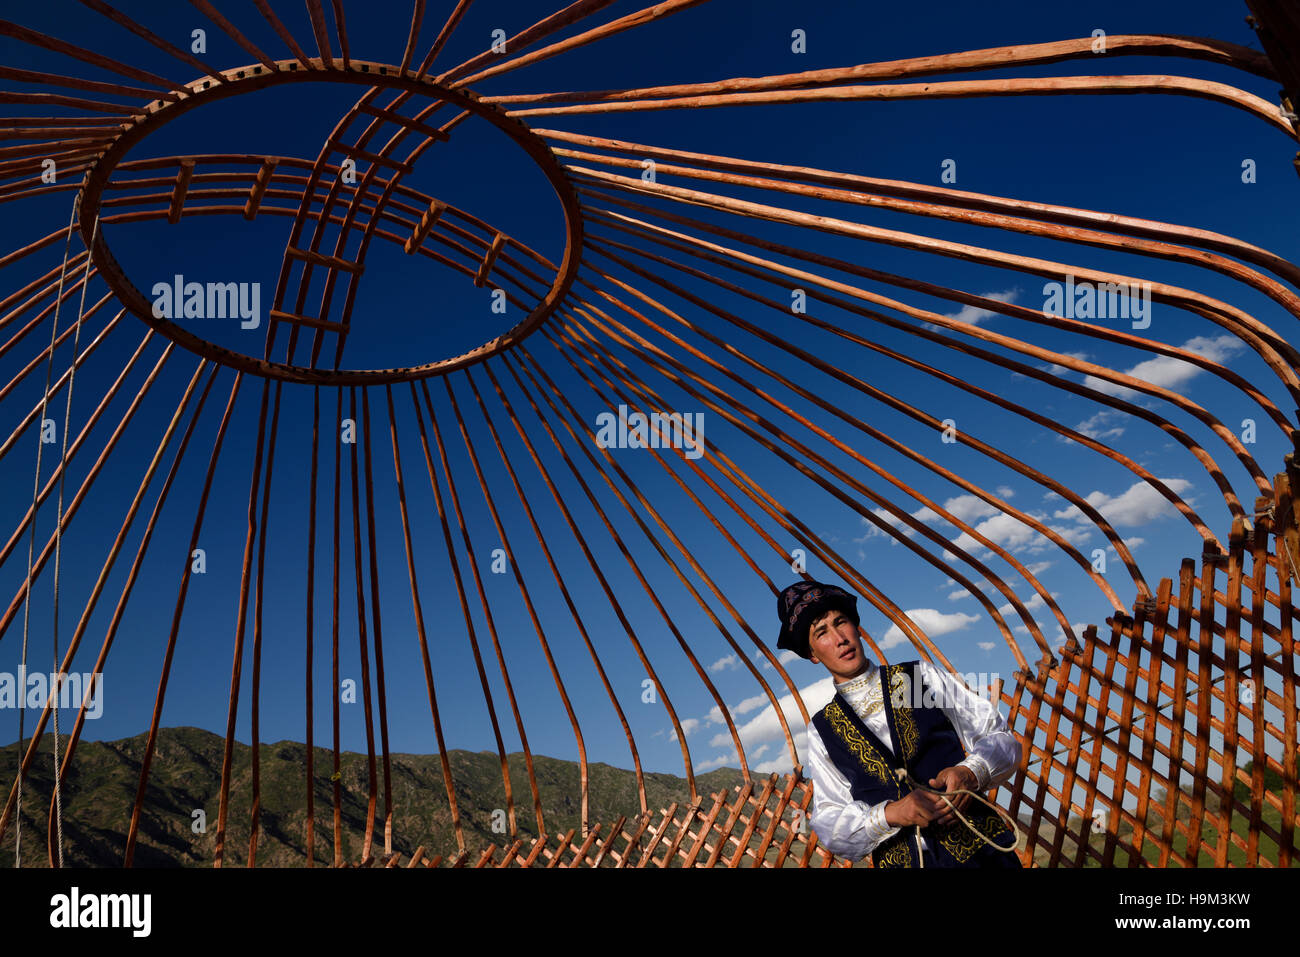 Kazakh man in traditional clothes under the wood frame of a Yurt against a blue sky Saty Kazakhstan - Stock Image